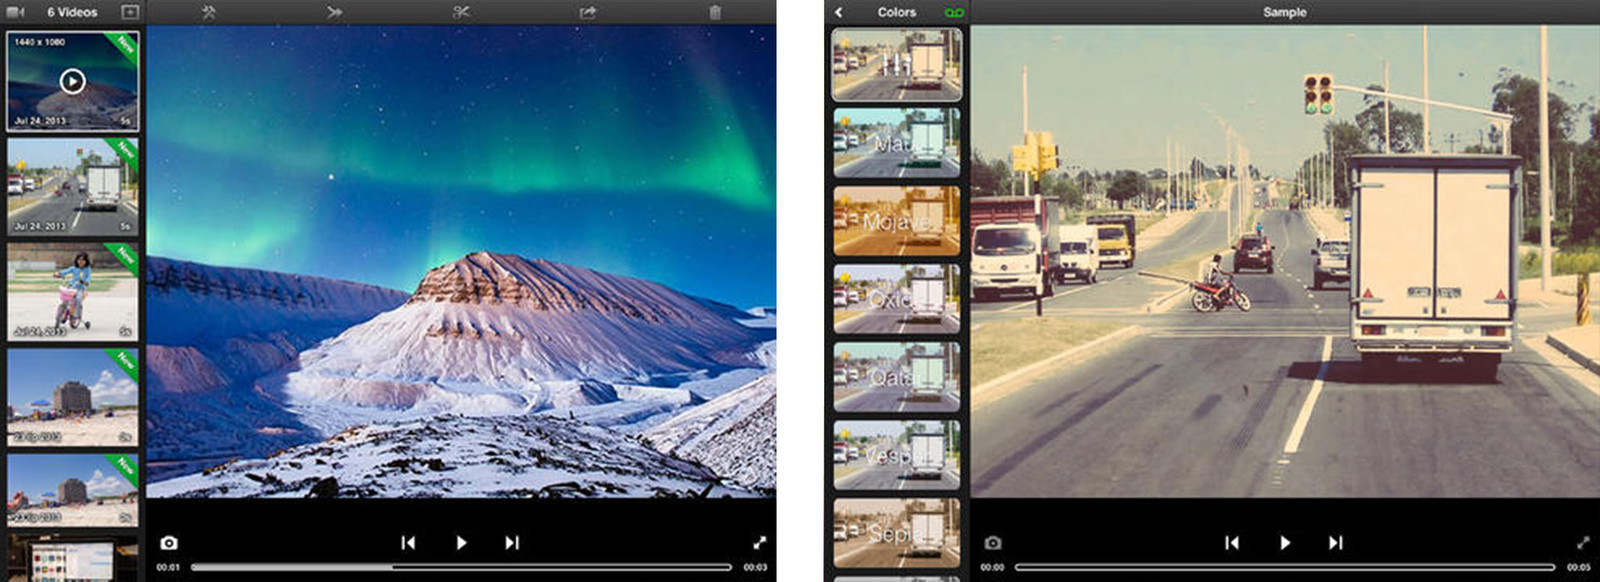 Best video editing apps for iPad: Videon